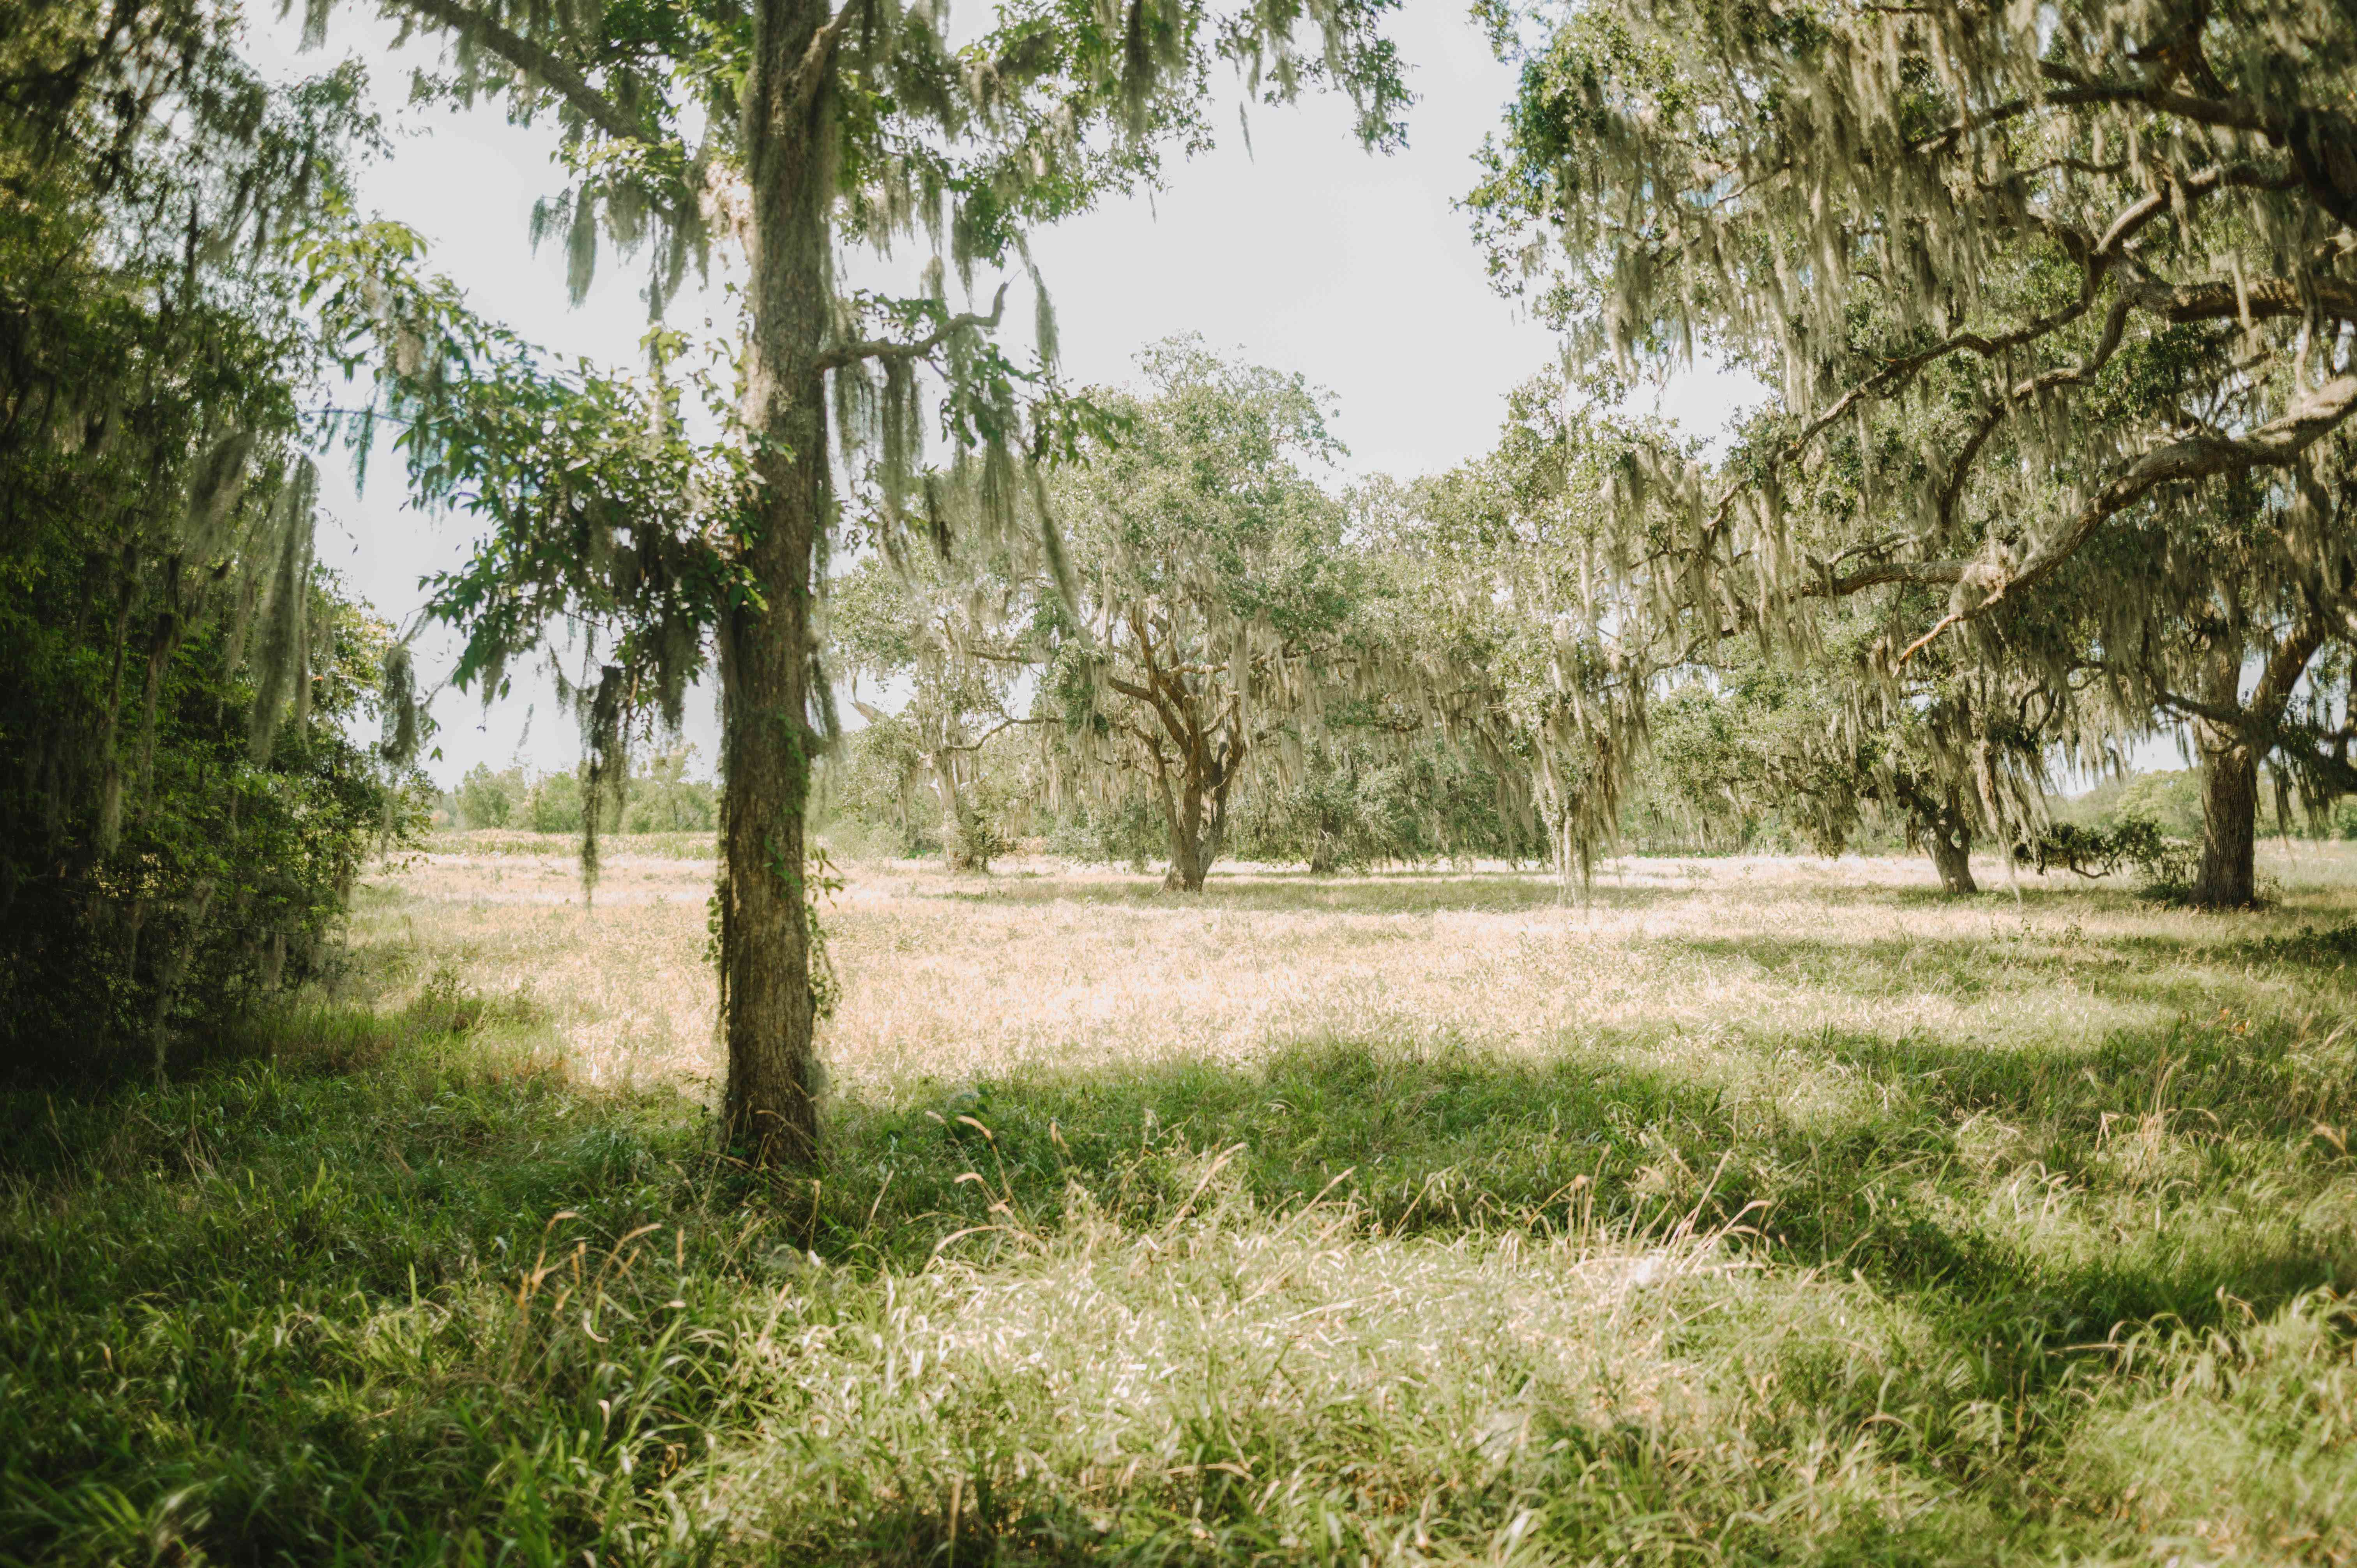 Grassy fields and mossy trees in the Brazos Bend State Park